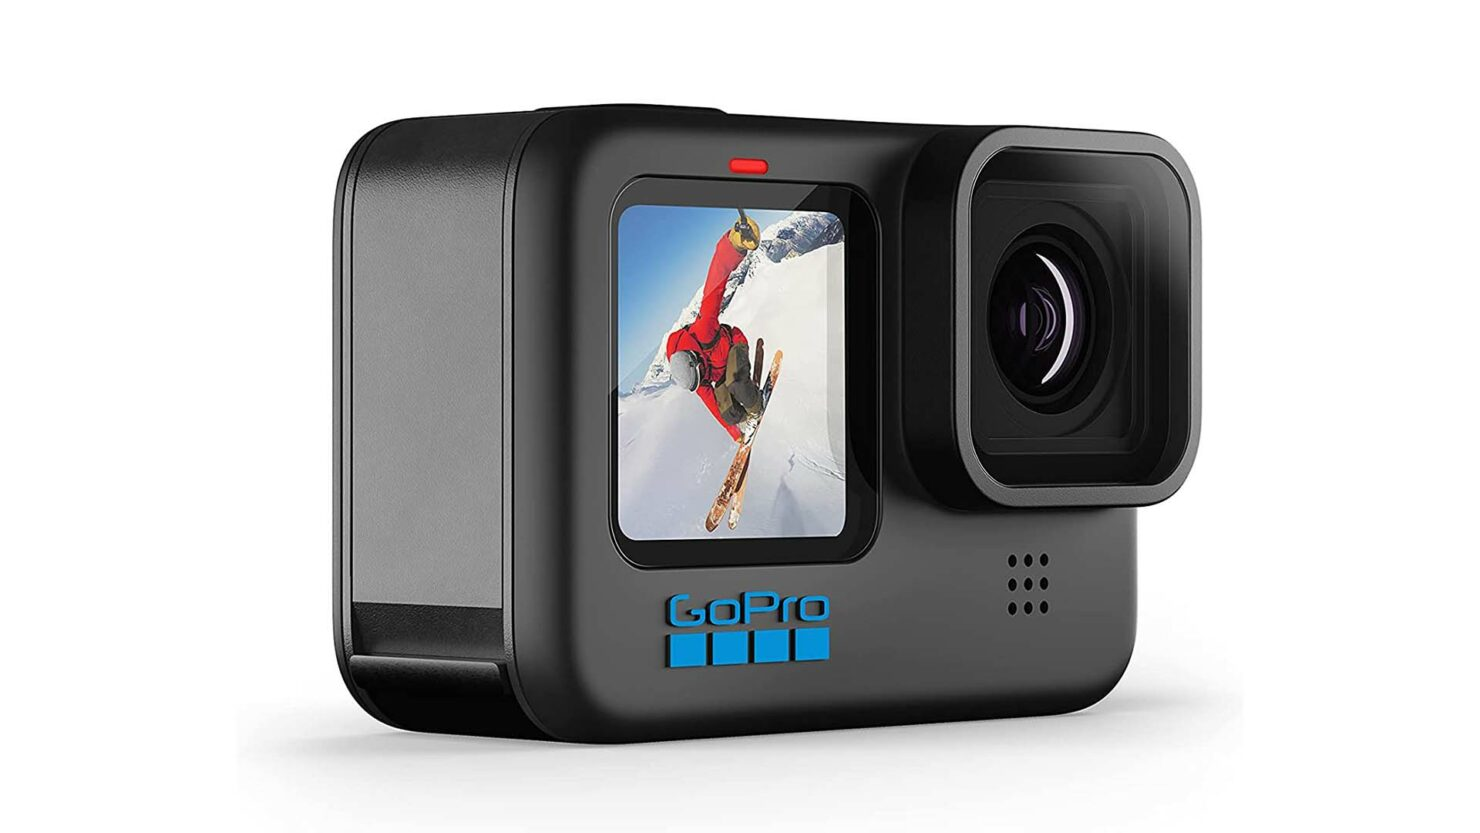 GoPro HERO10 Black Goes Official With 5.3K 60FPS Video Recording Support, 23MP Stills, Advanced Stabilization & More